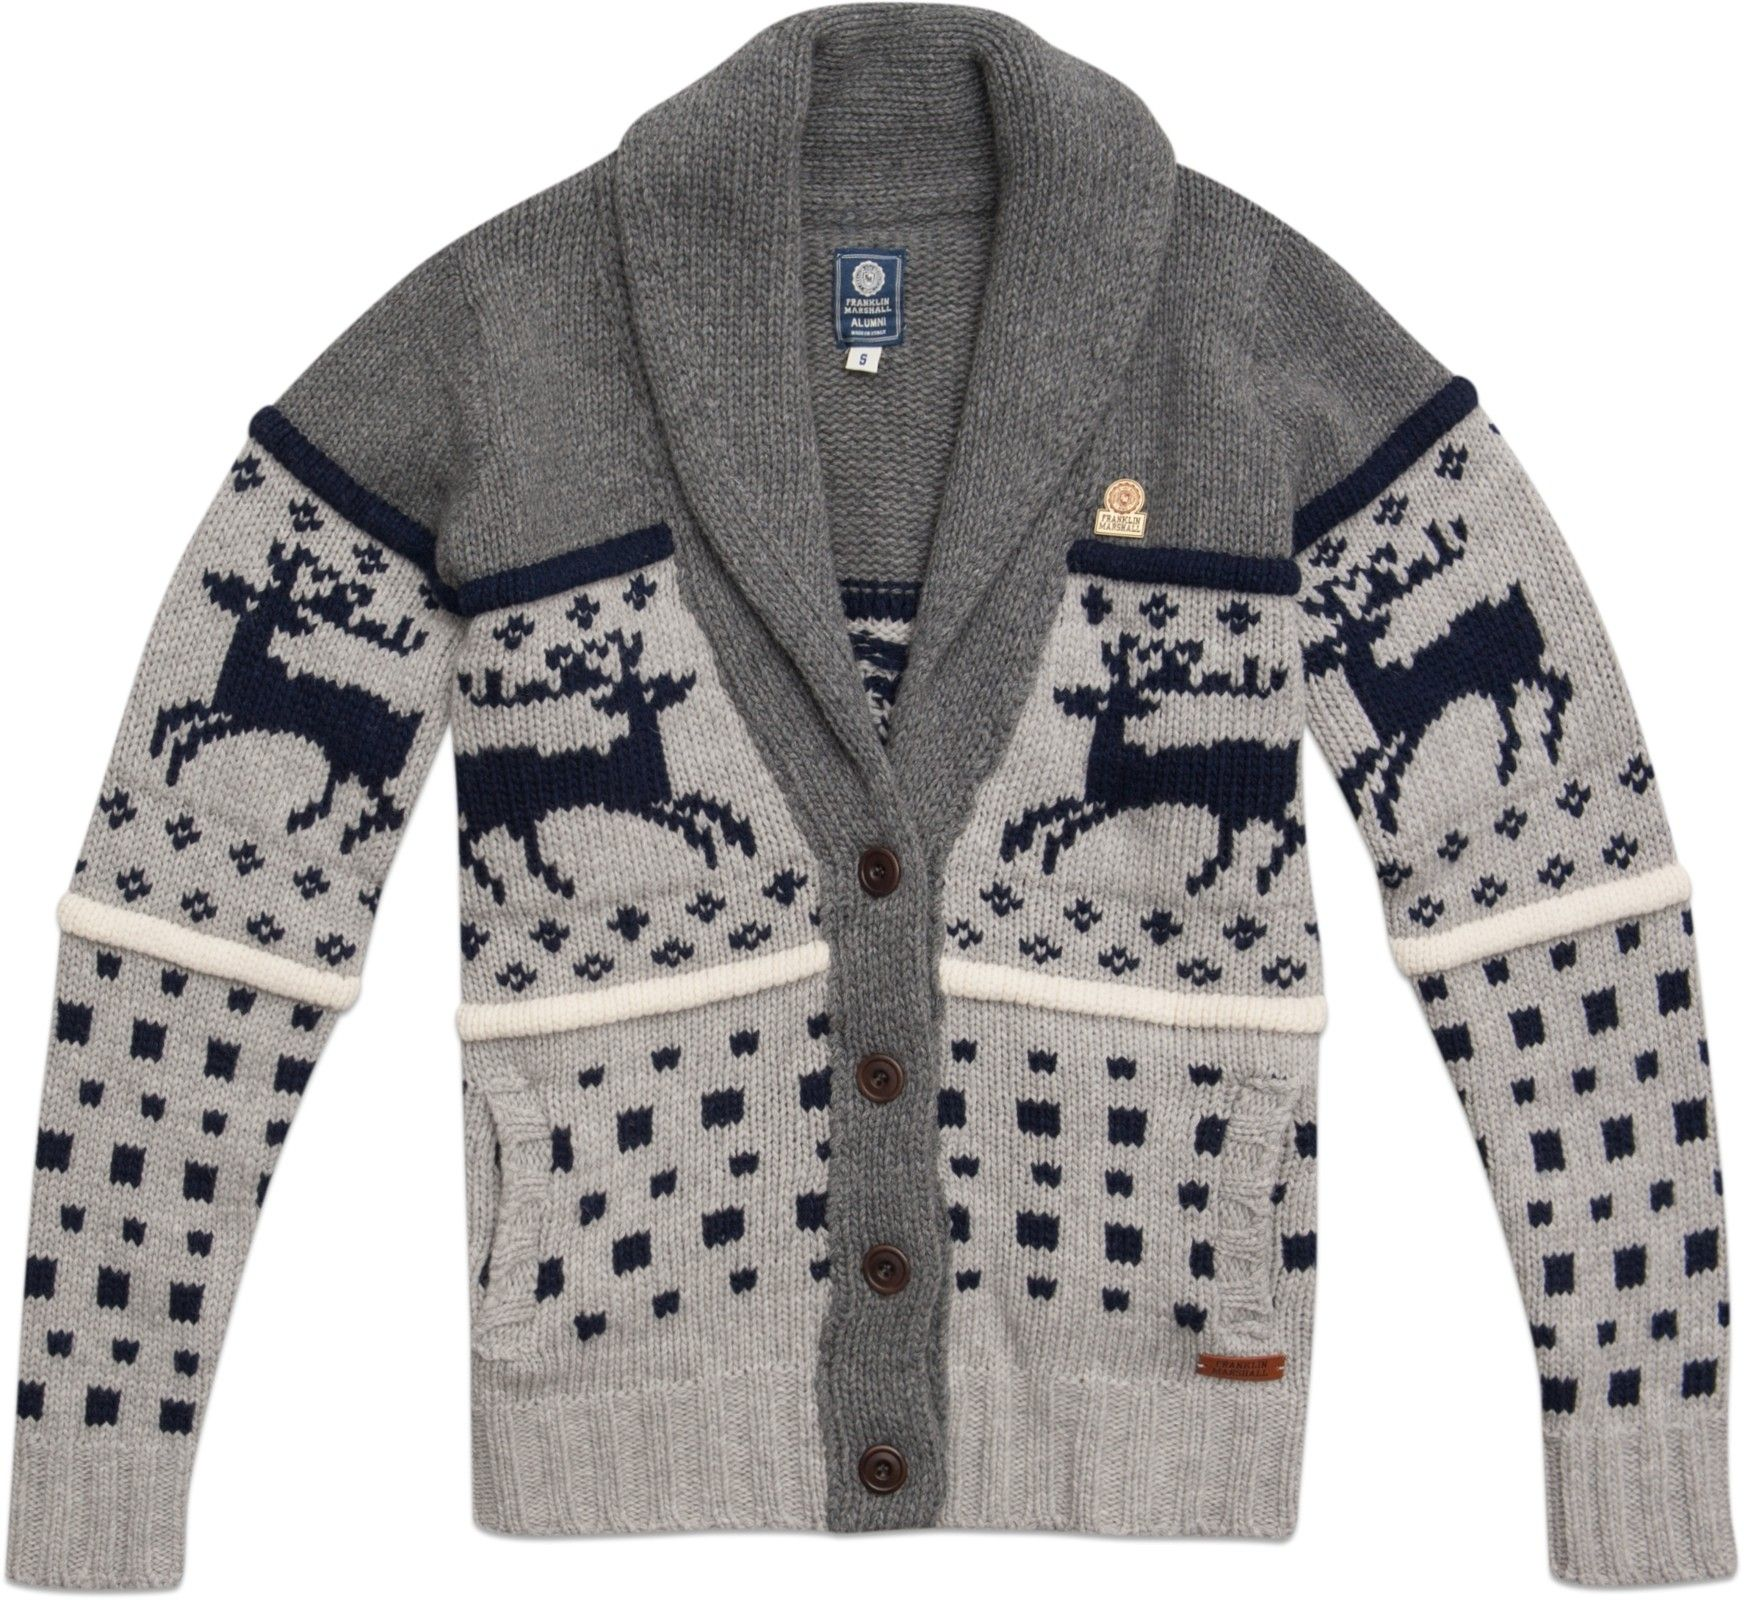 All you need for Christmas is a #cardigan with reindeer